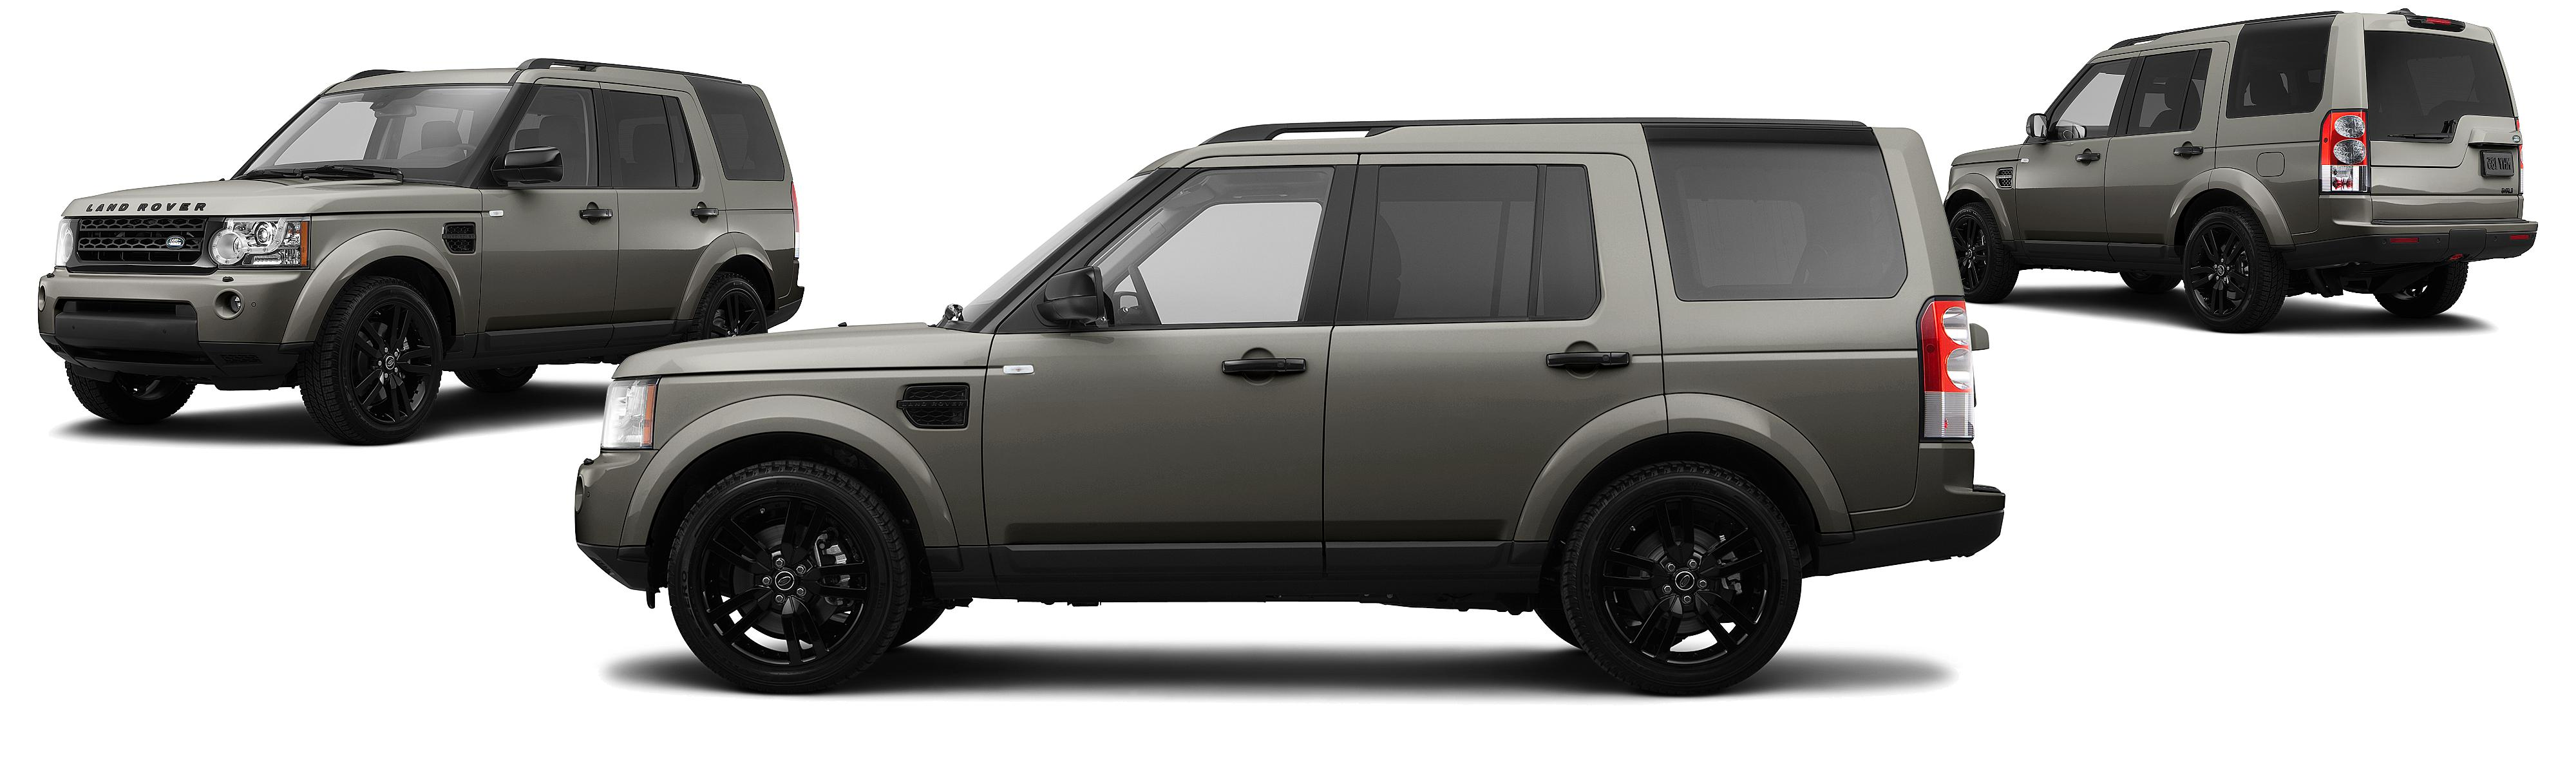 2013 Land Rover LR4 4x4 4dr SUV Research GrooveCar